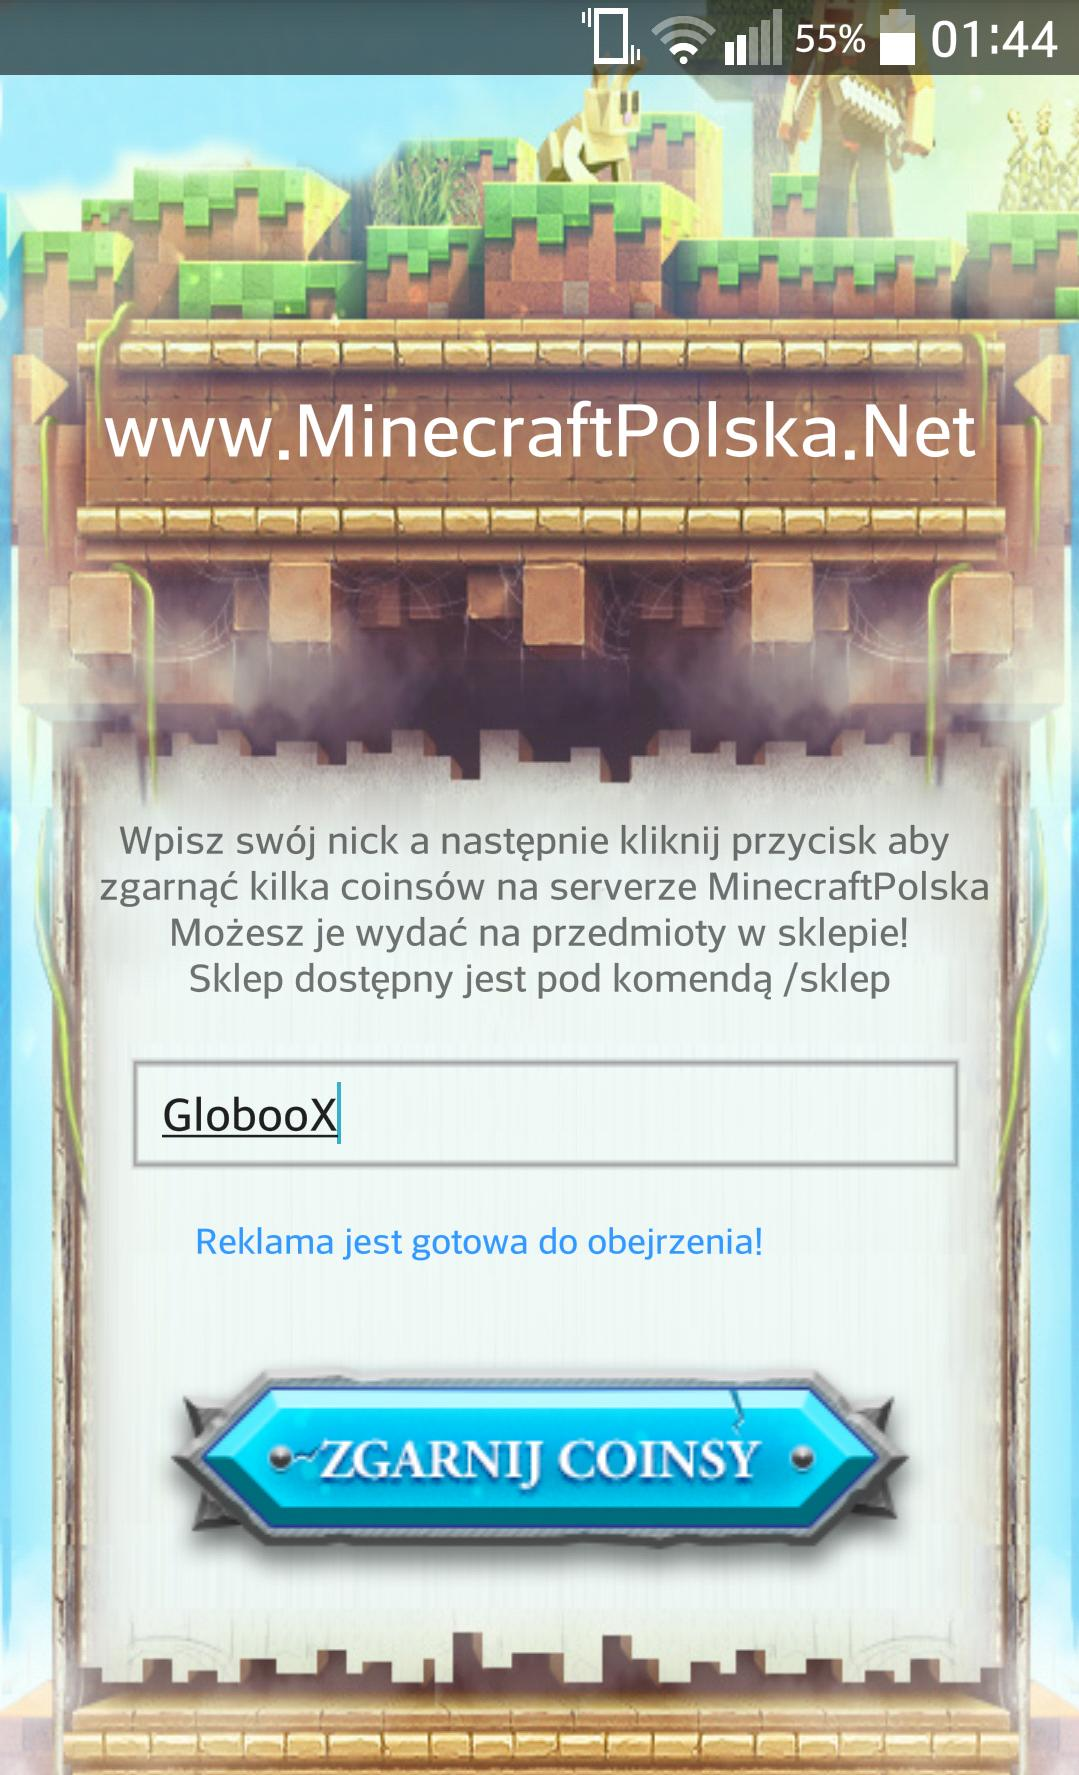 MinecraftPolska Darmowe Coinsy for Android - APK Download